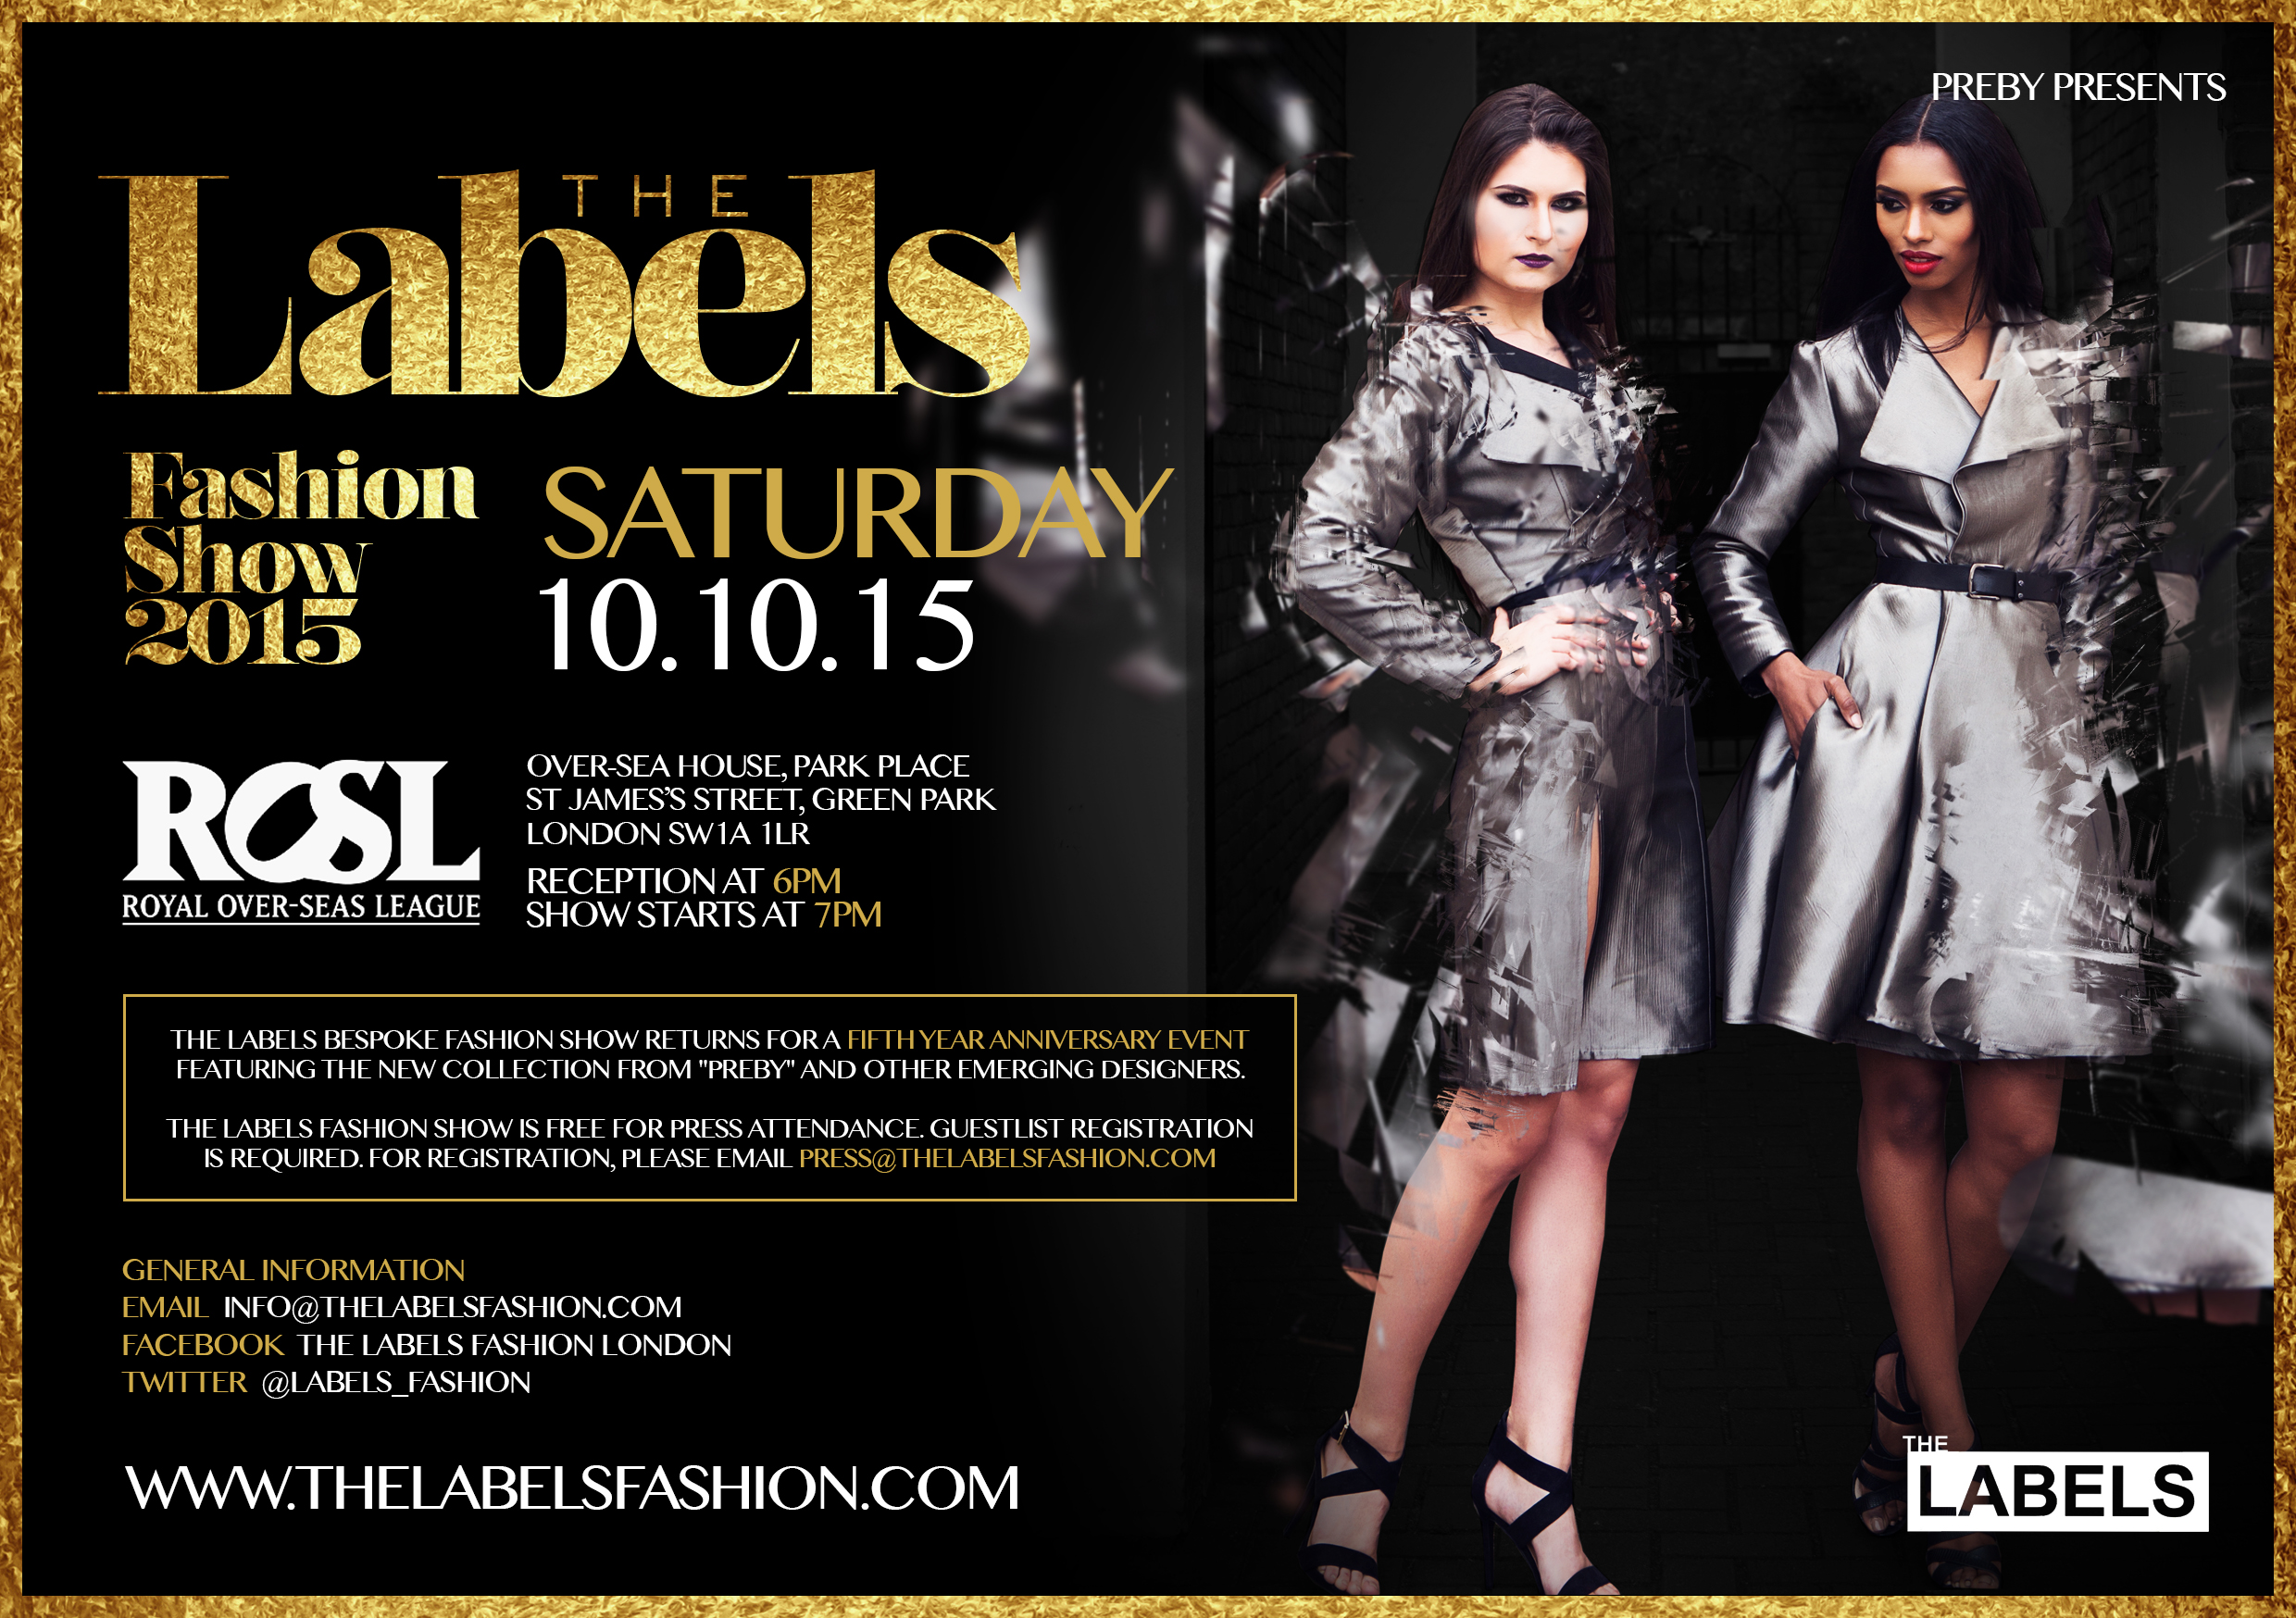 The Labels Fashion Show